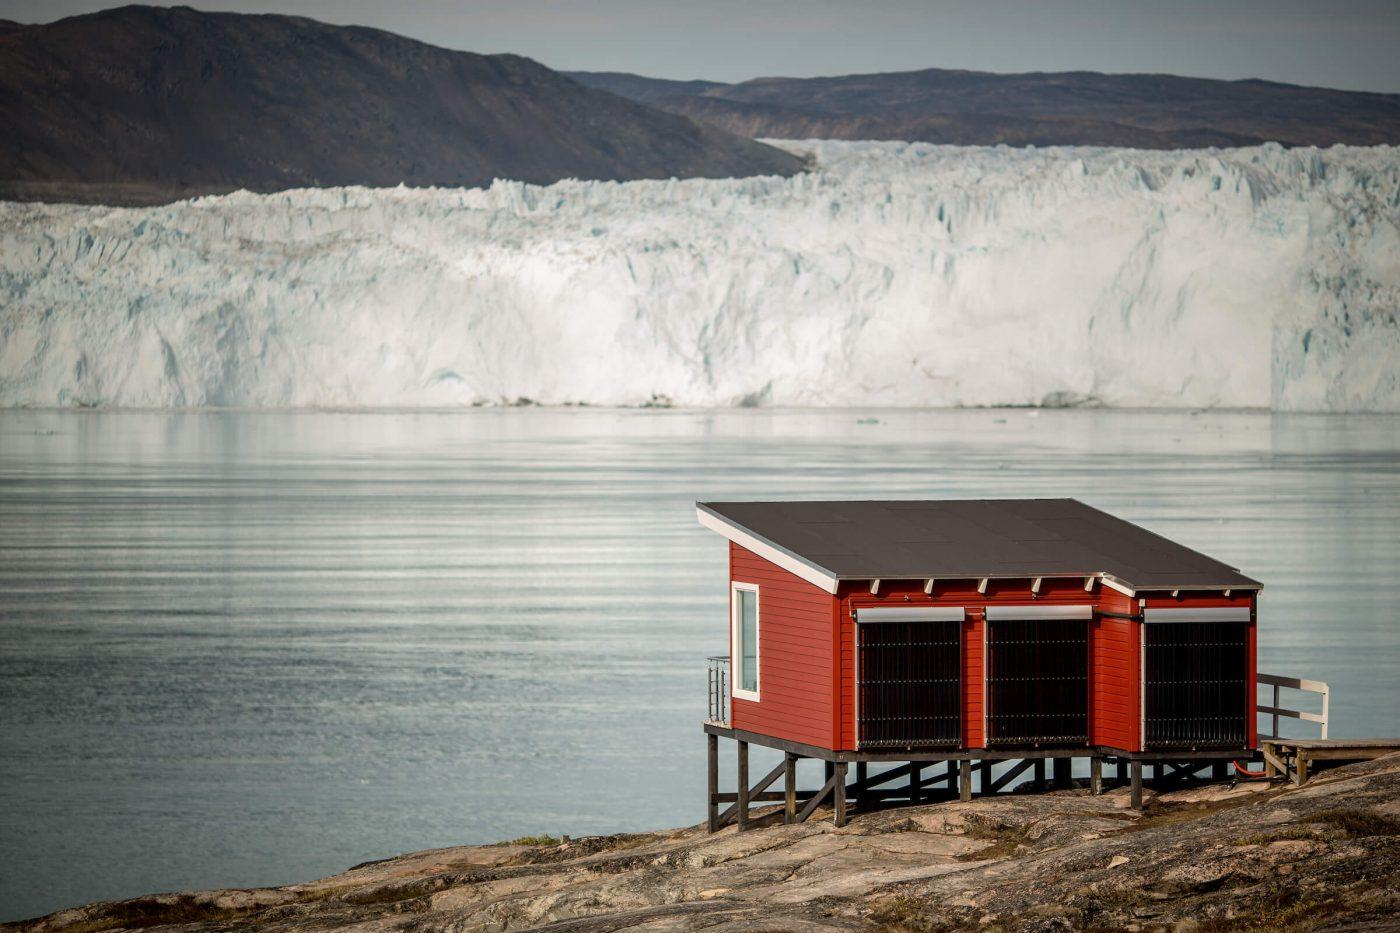 A comfort hut at Eqi Glacier Lodge with the glacier in the background in North Greenland. Photo by Mads Pihl